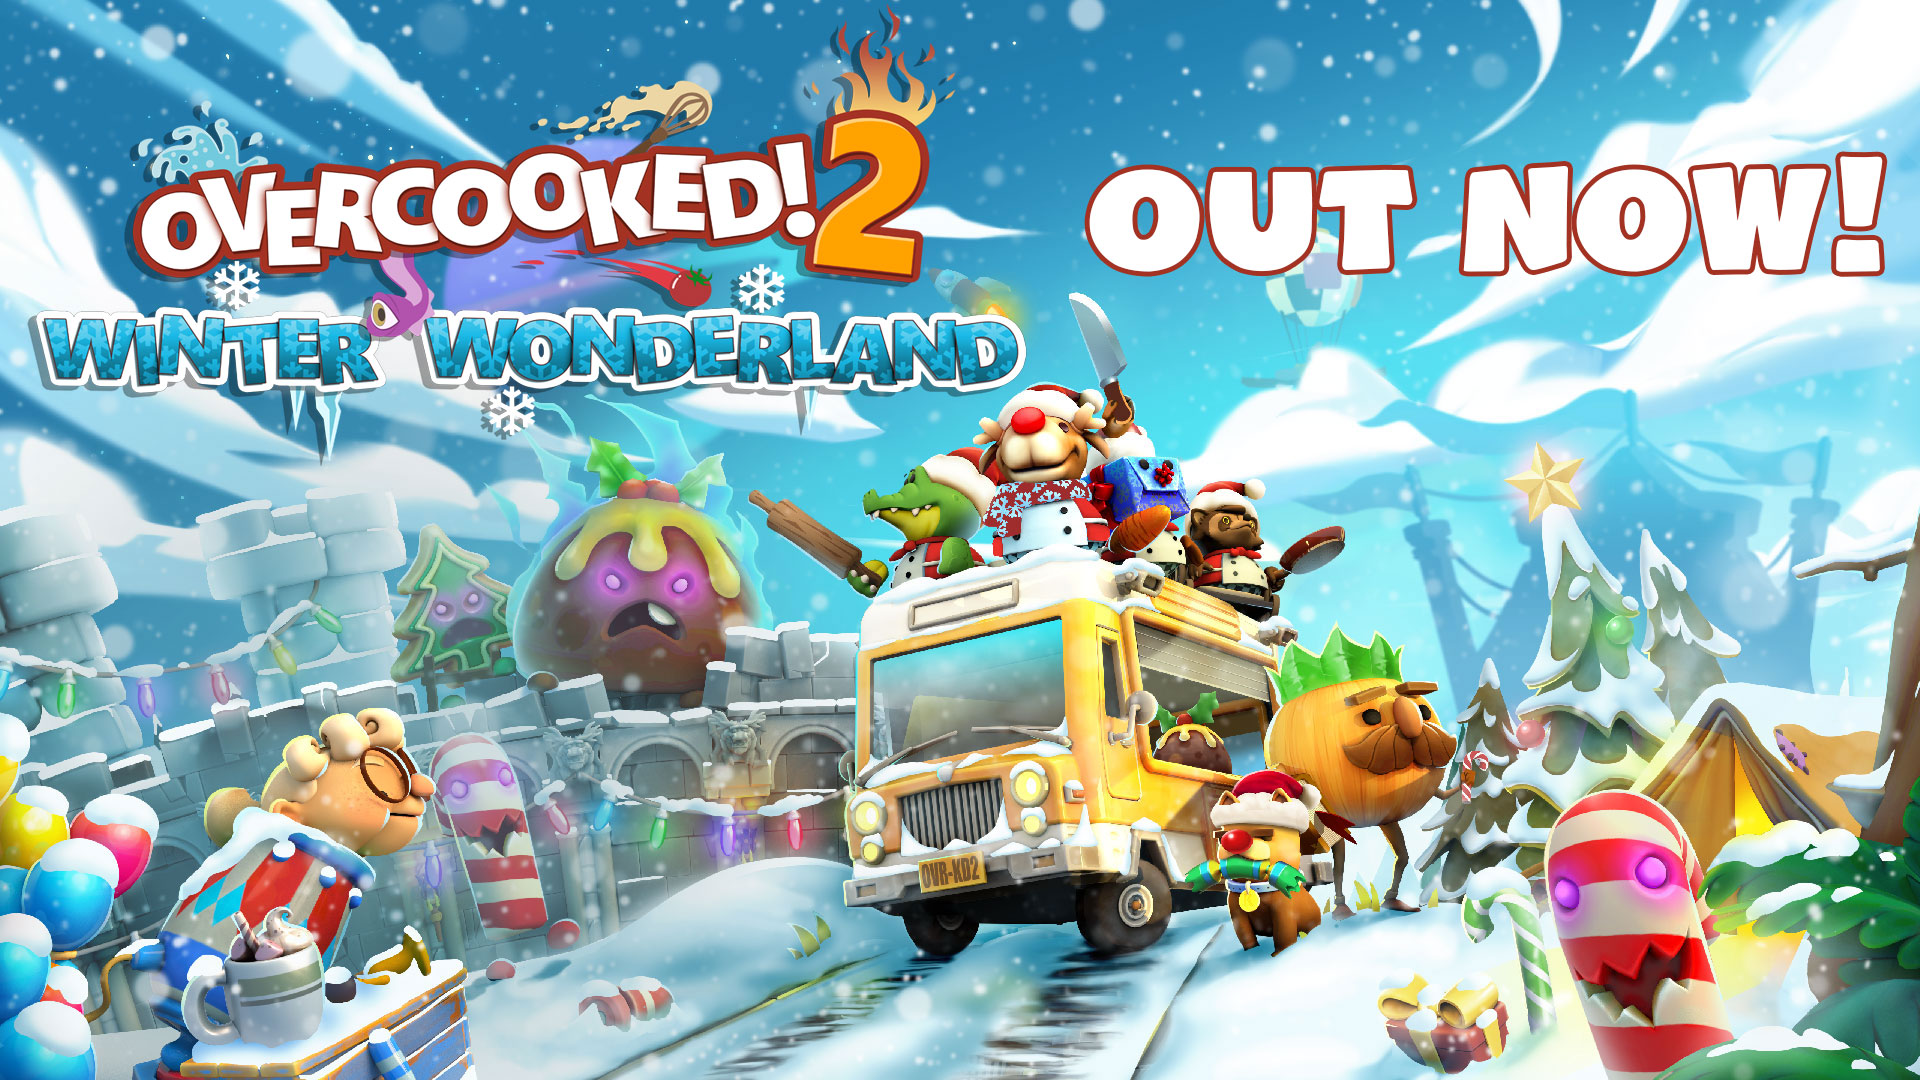 Overcooked! 2 – Winter Wonderland Update Out Now!